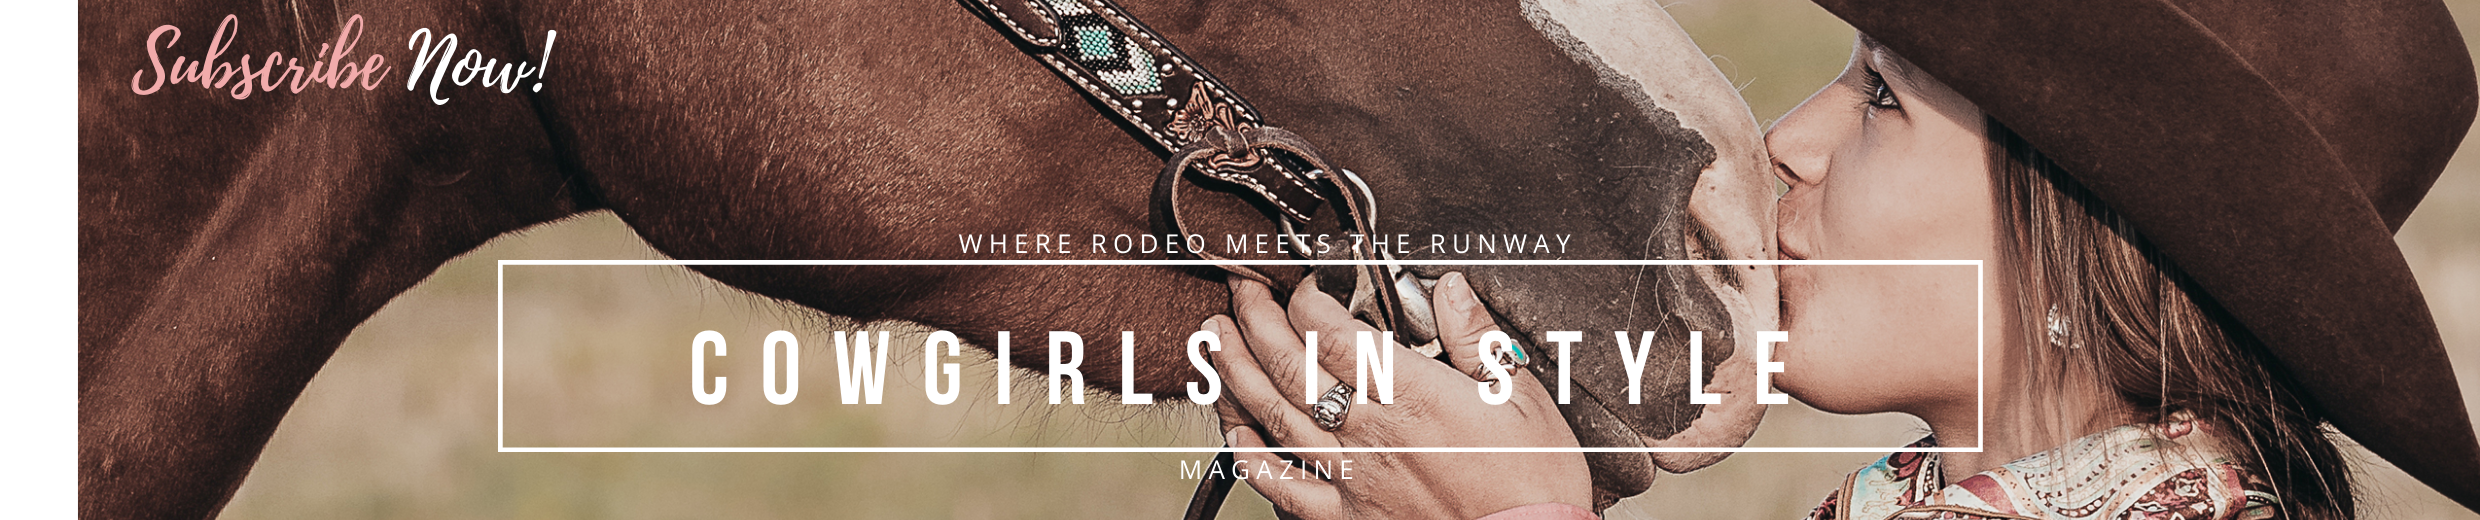 April 2020 - Cowgirls In Style Magazine